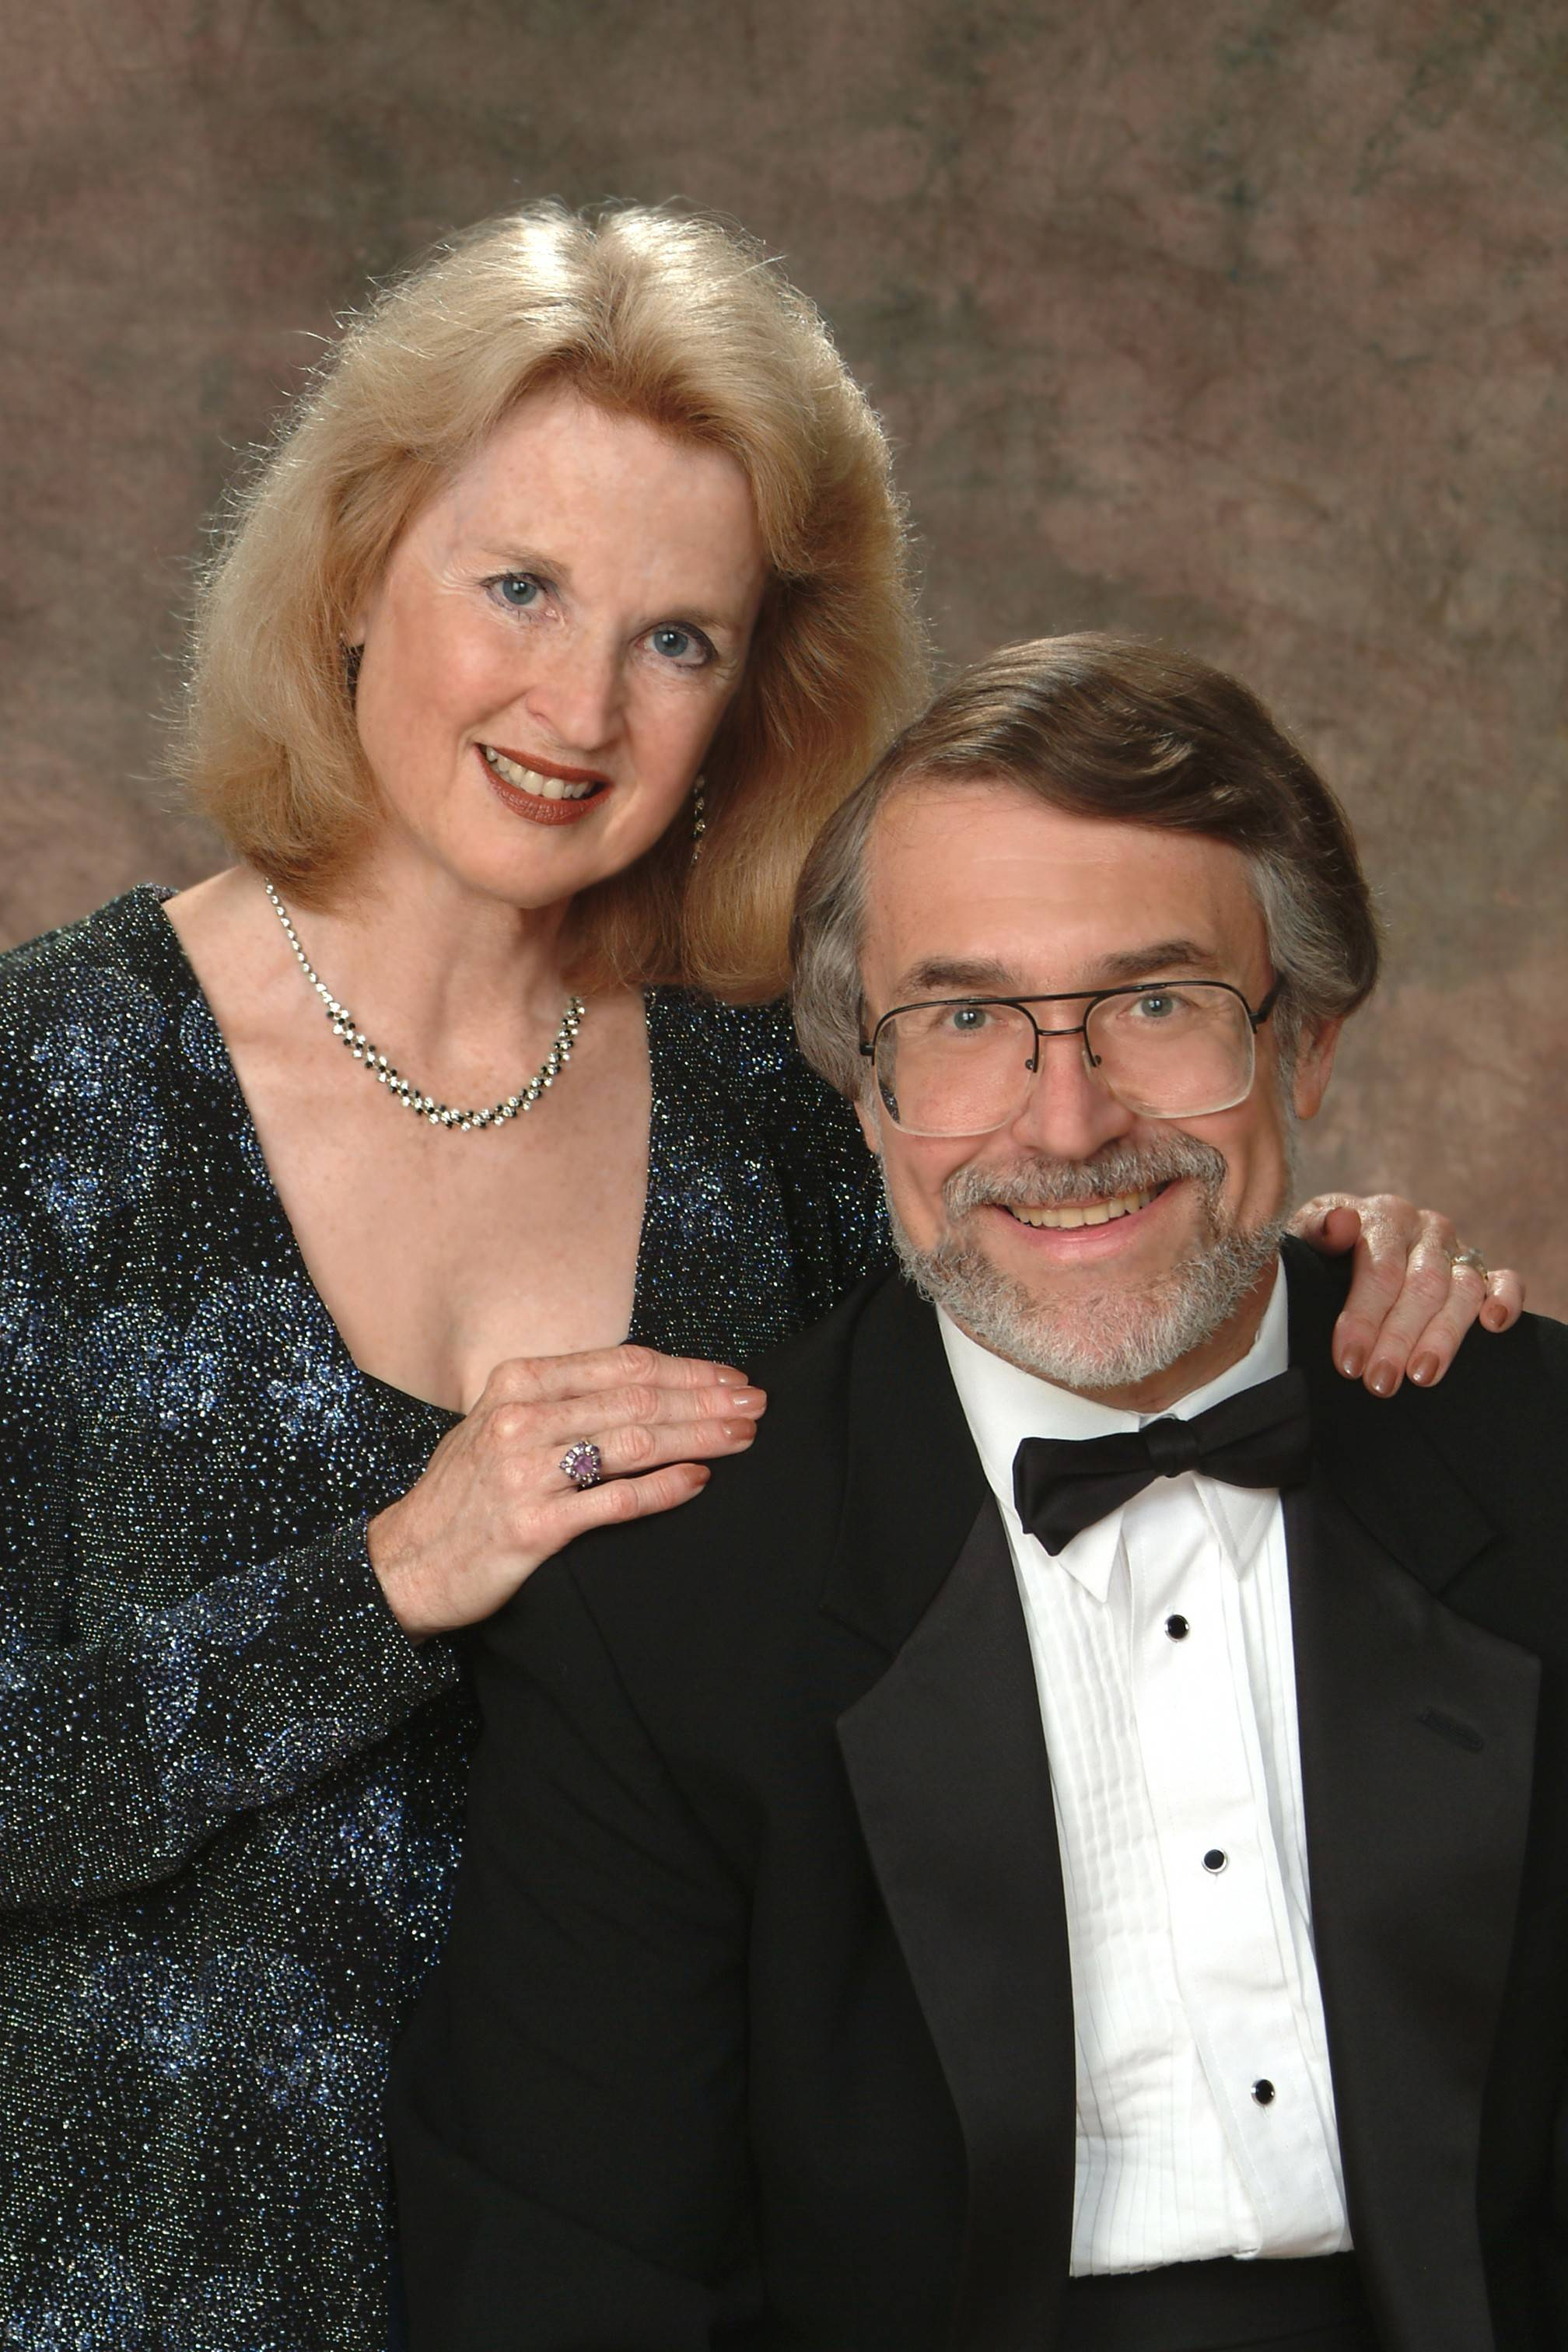 Cecelia and Harold Kafer return to Northern Illinois University to perform concert Sunday, Aug. 10.